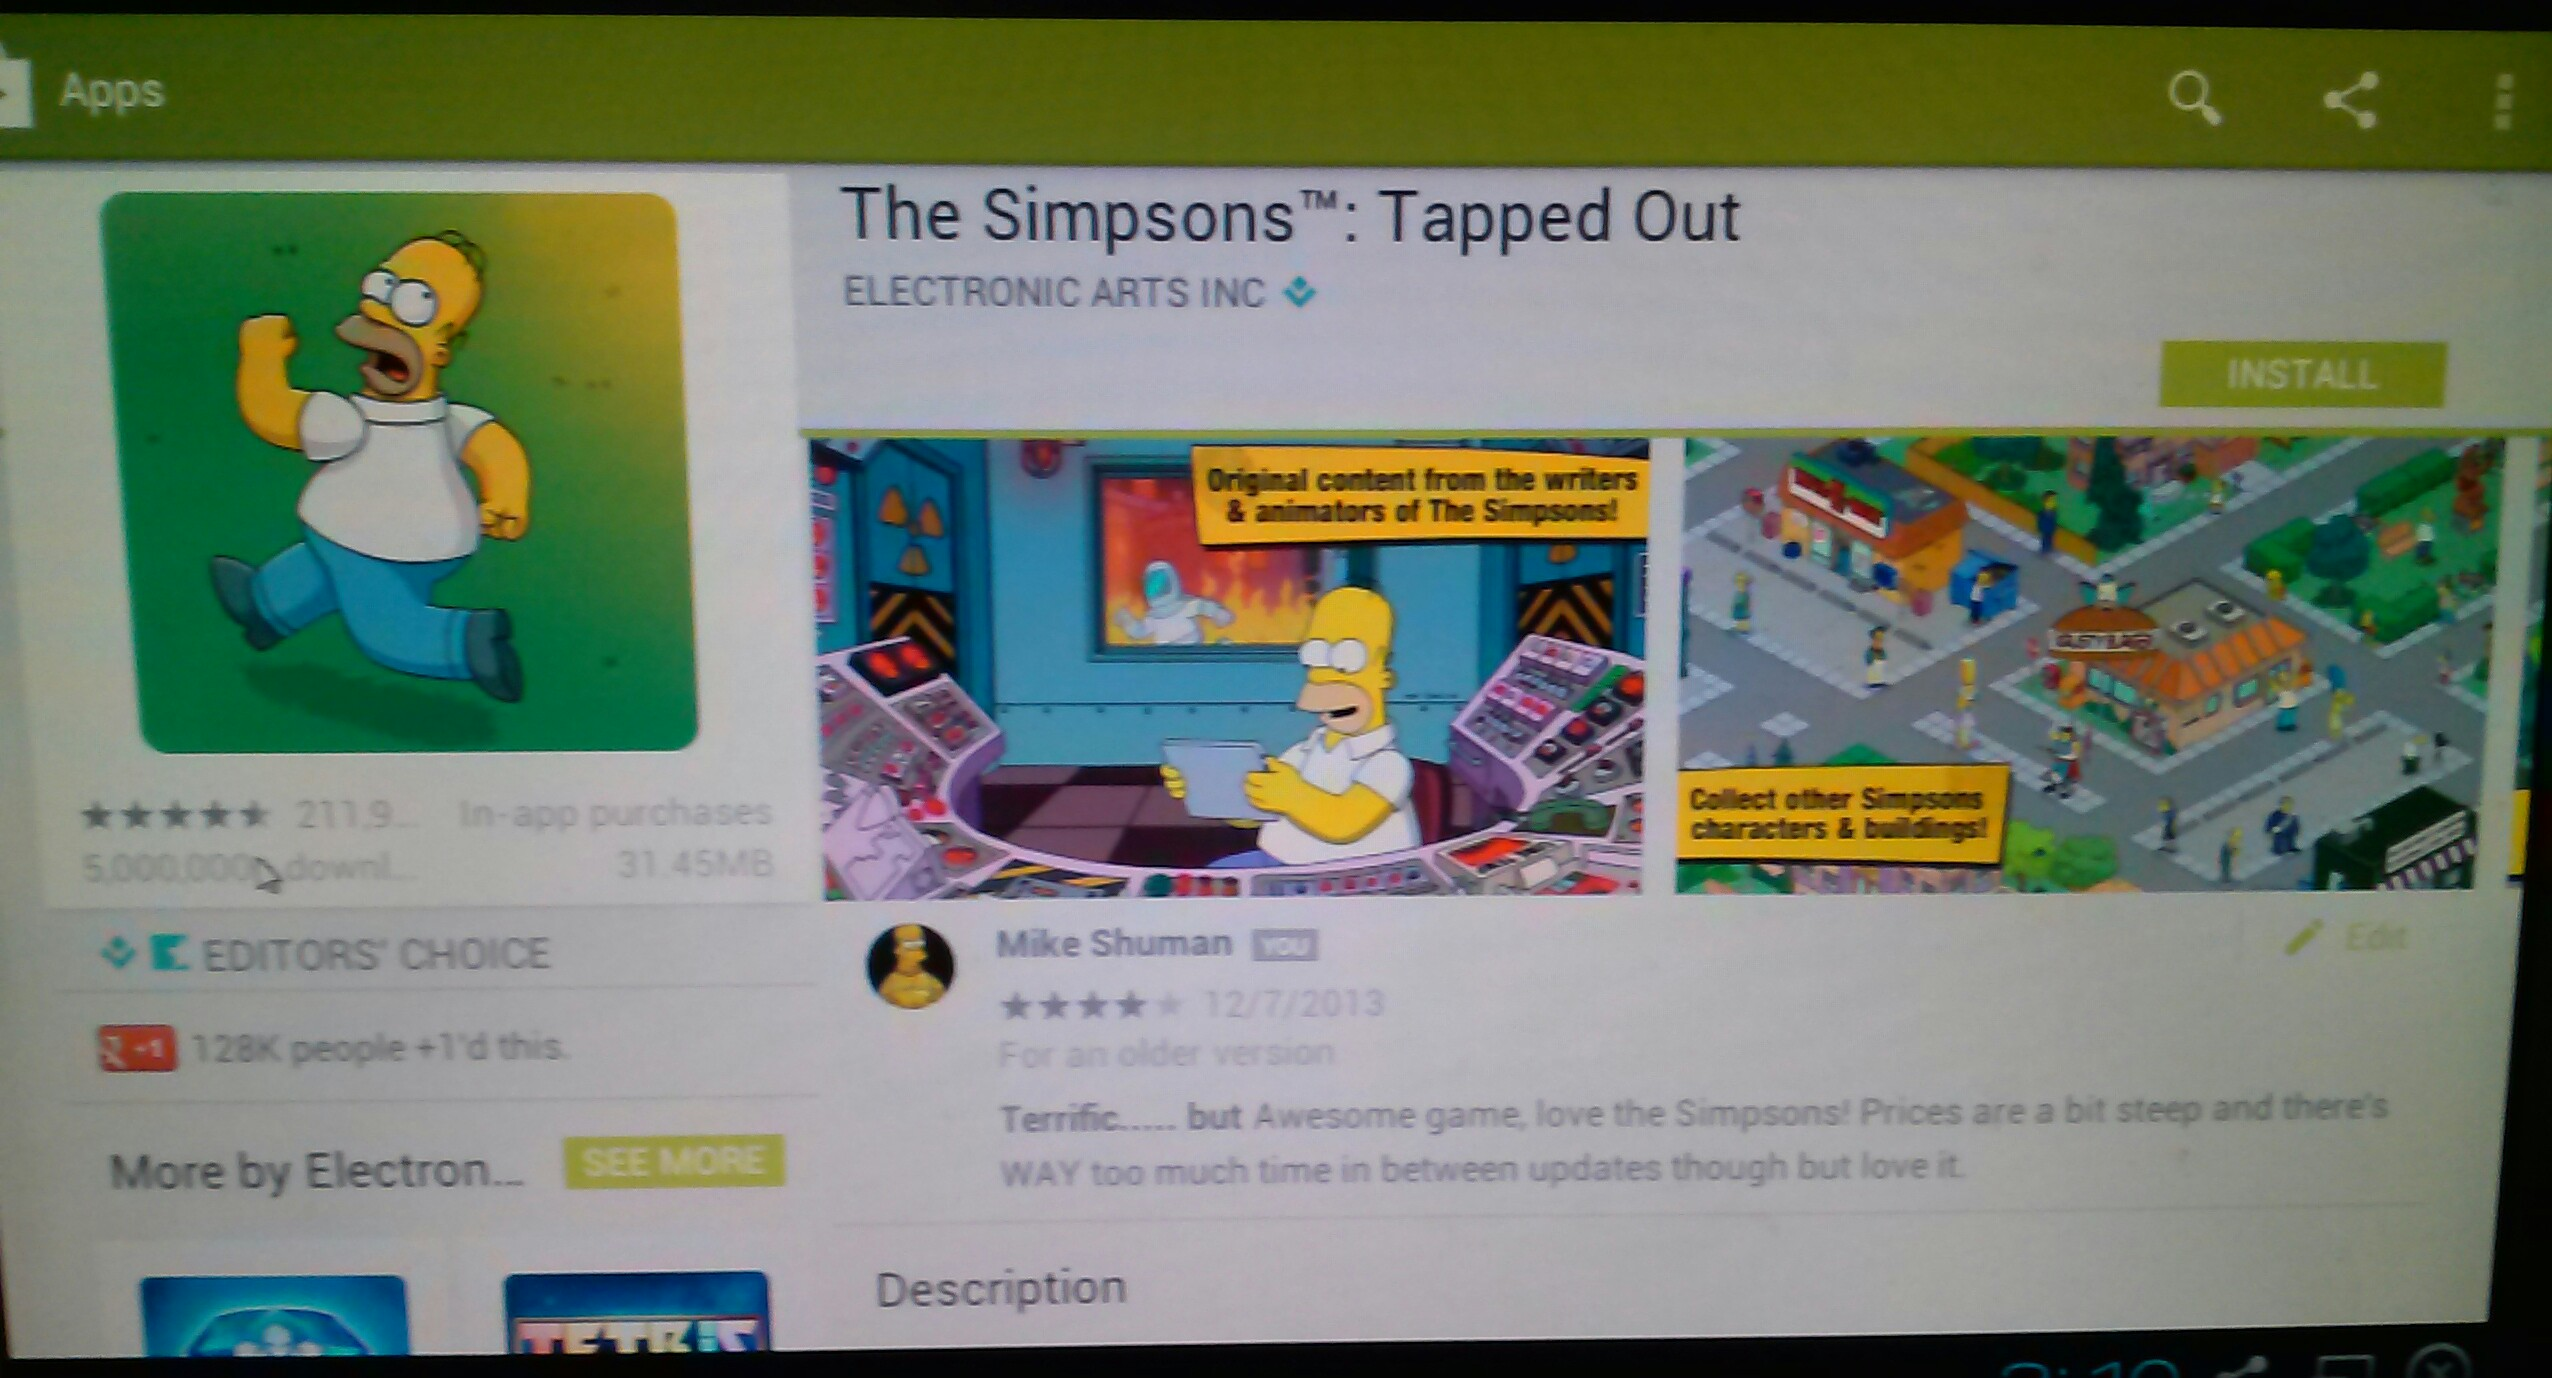 will open right to the search results. Select Tapped Out and Install